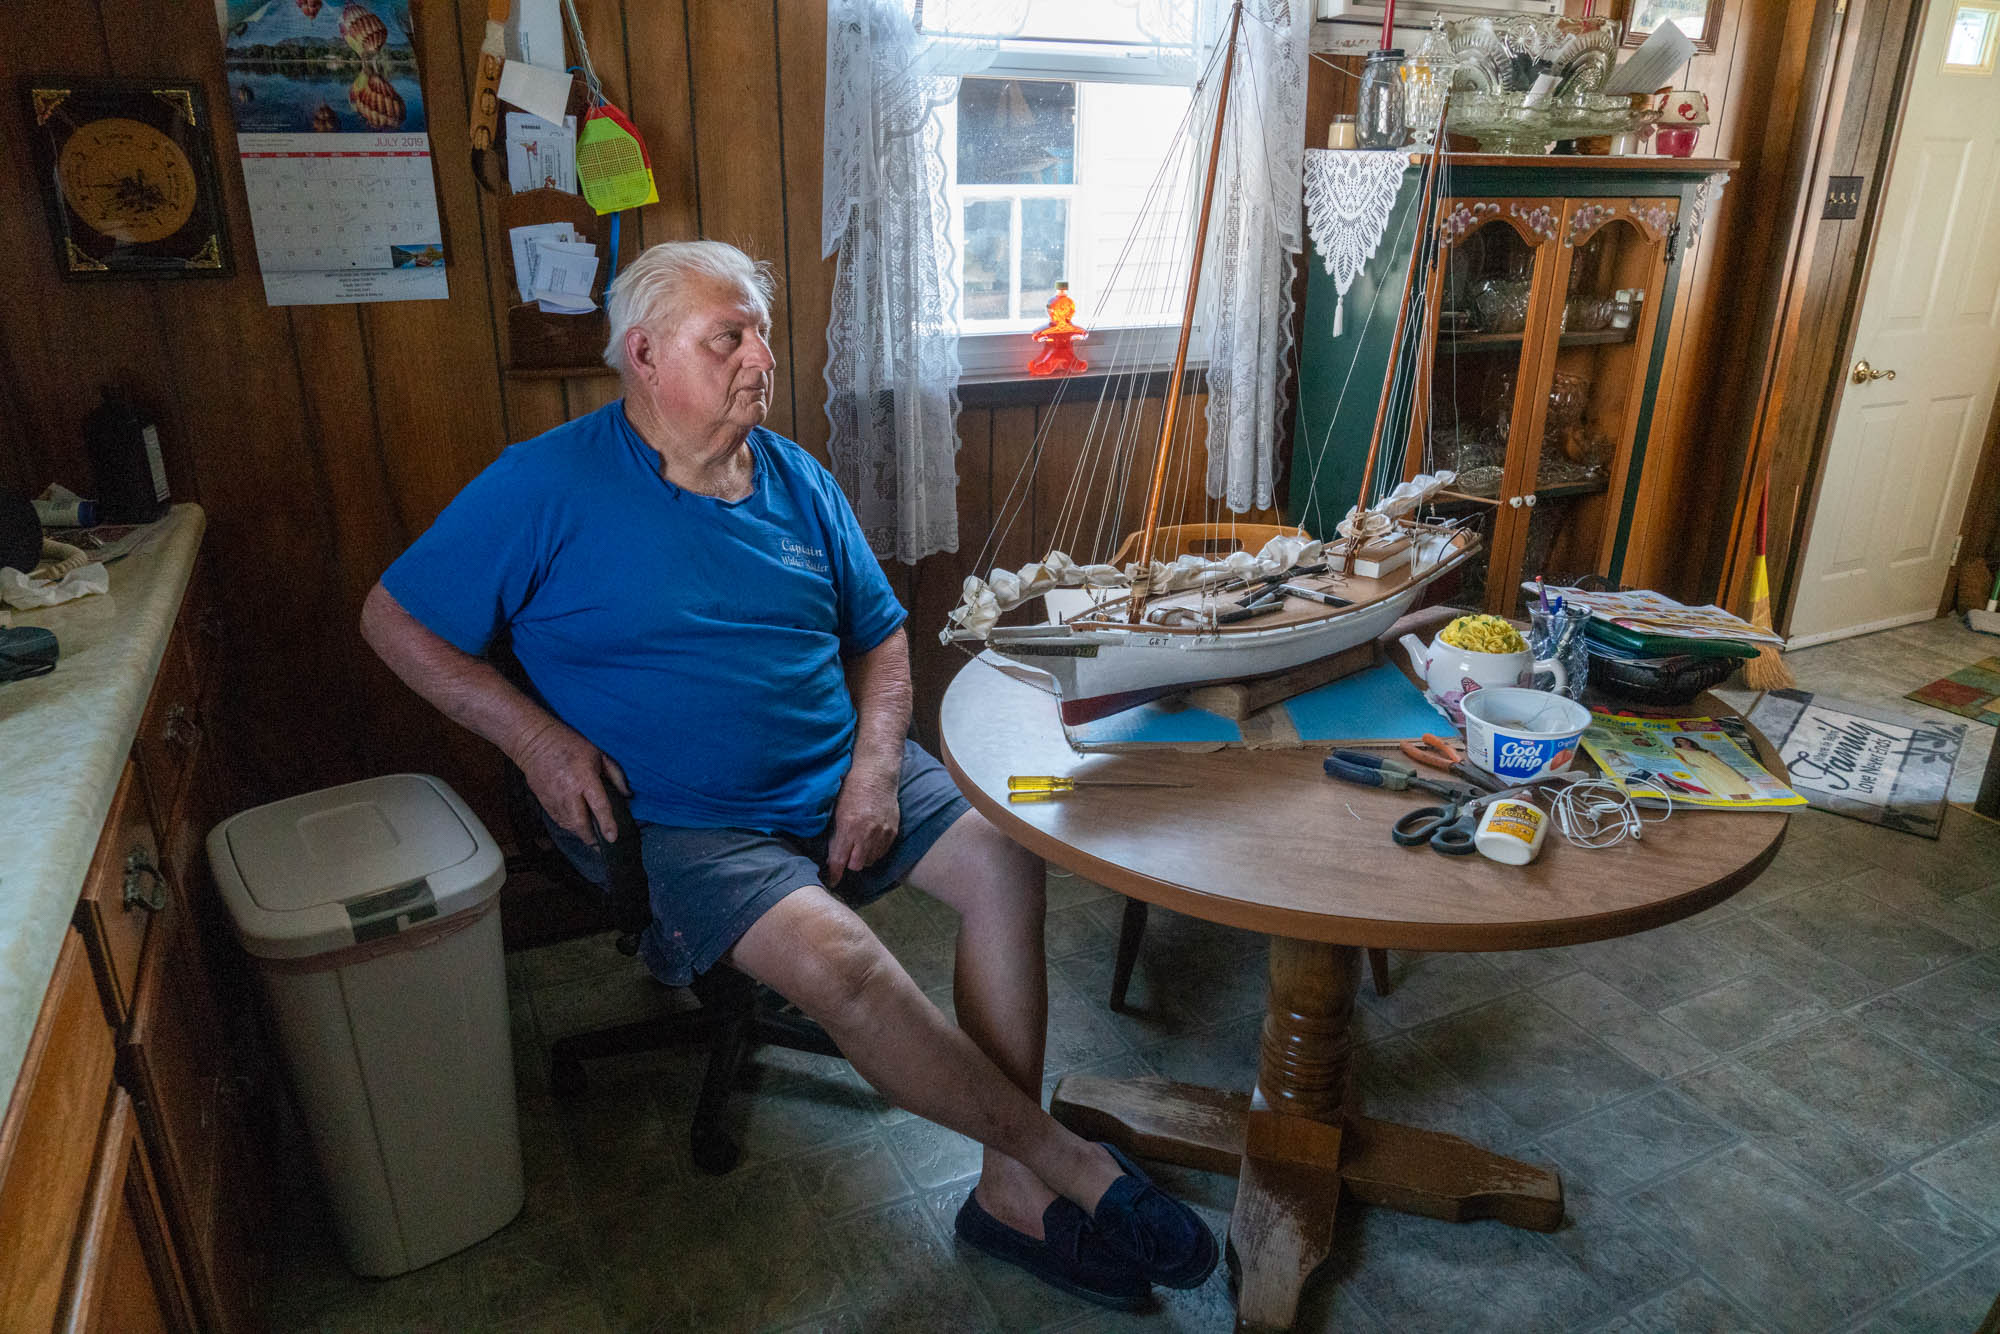 Wesley Bradshaw, a lifelong resident of Smith Island, Maryland, believes the climate is changing but he discounts its role in rising sea levels in Chesapeake Bay. (Jordan Laird/News21)